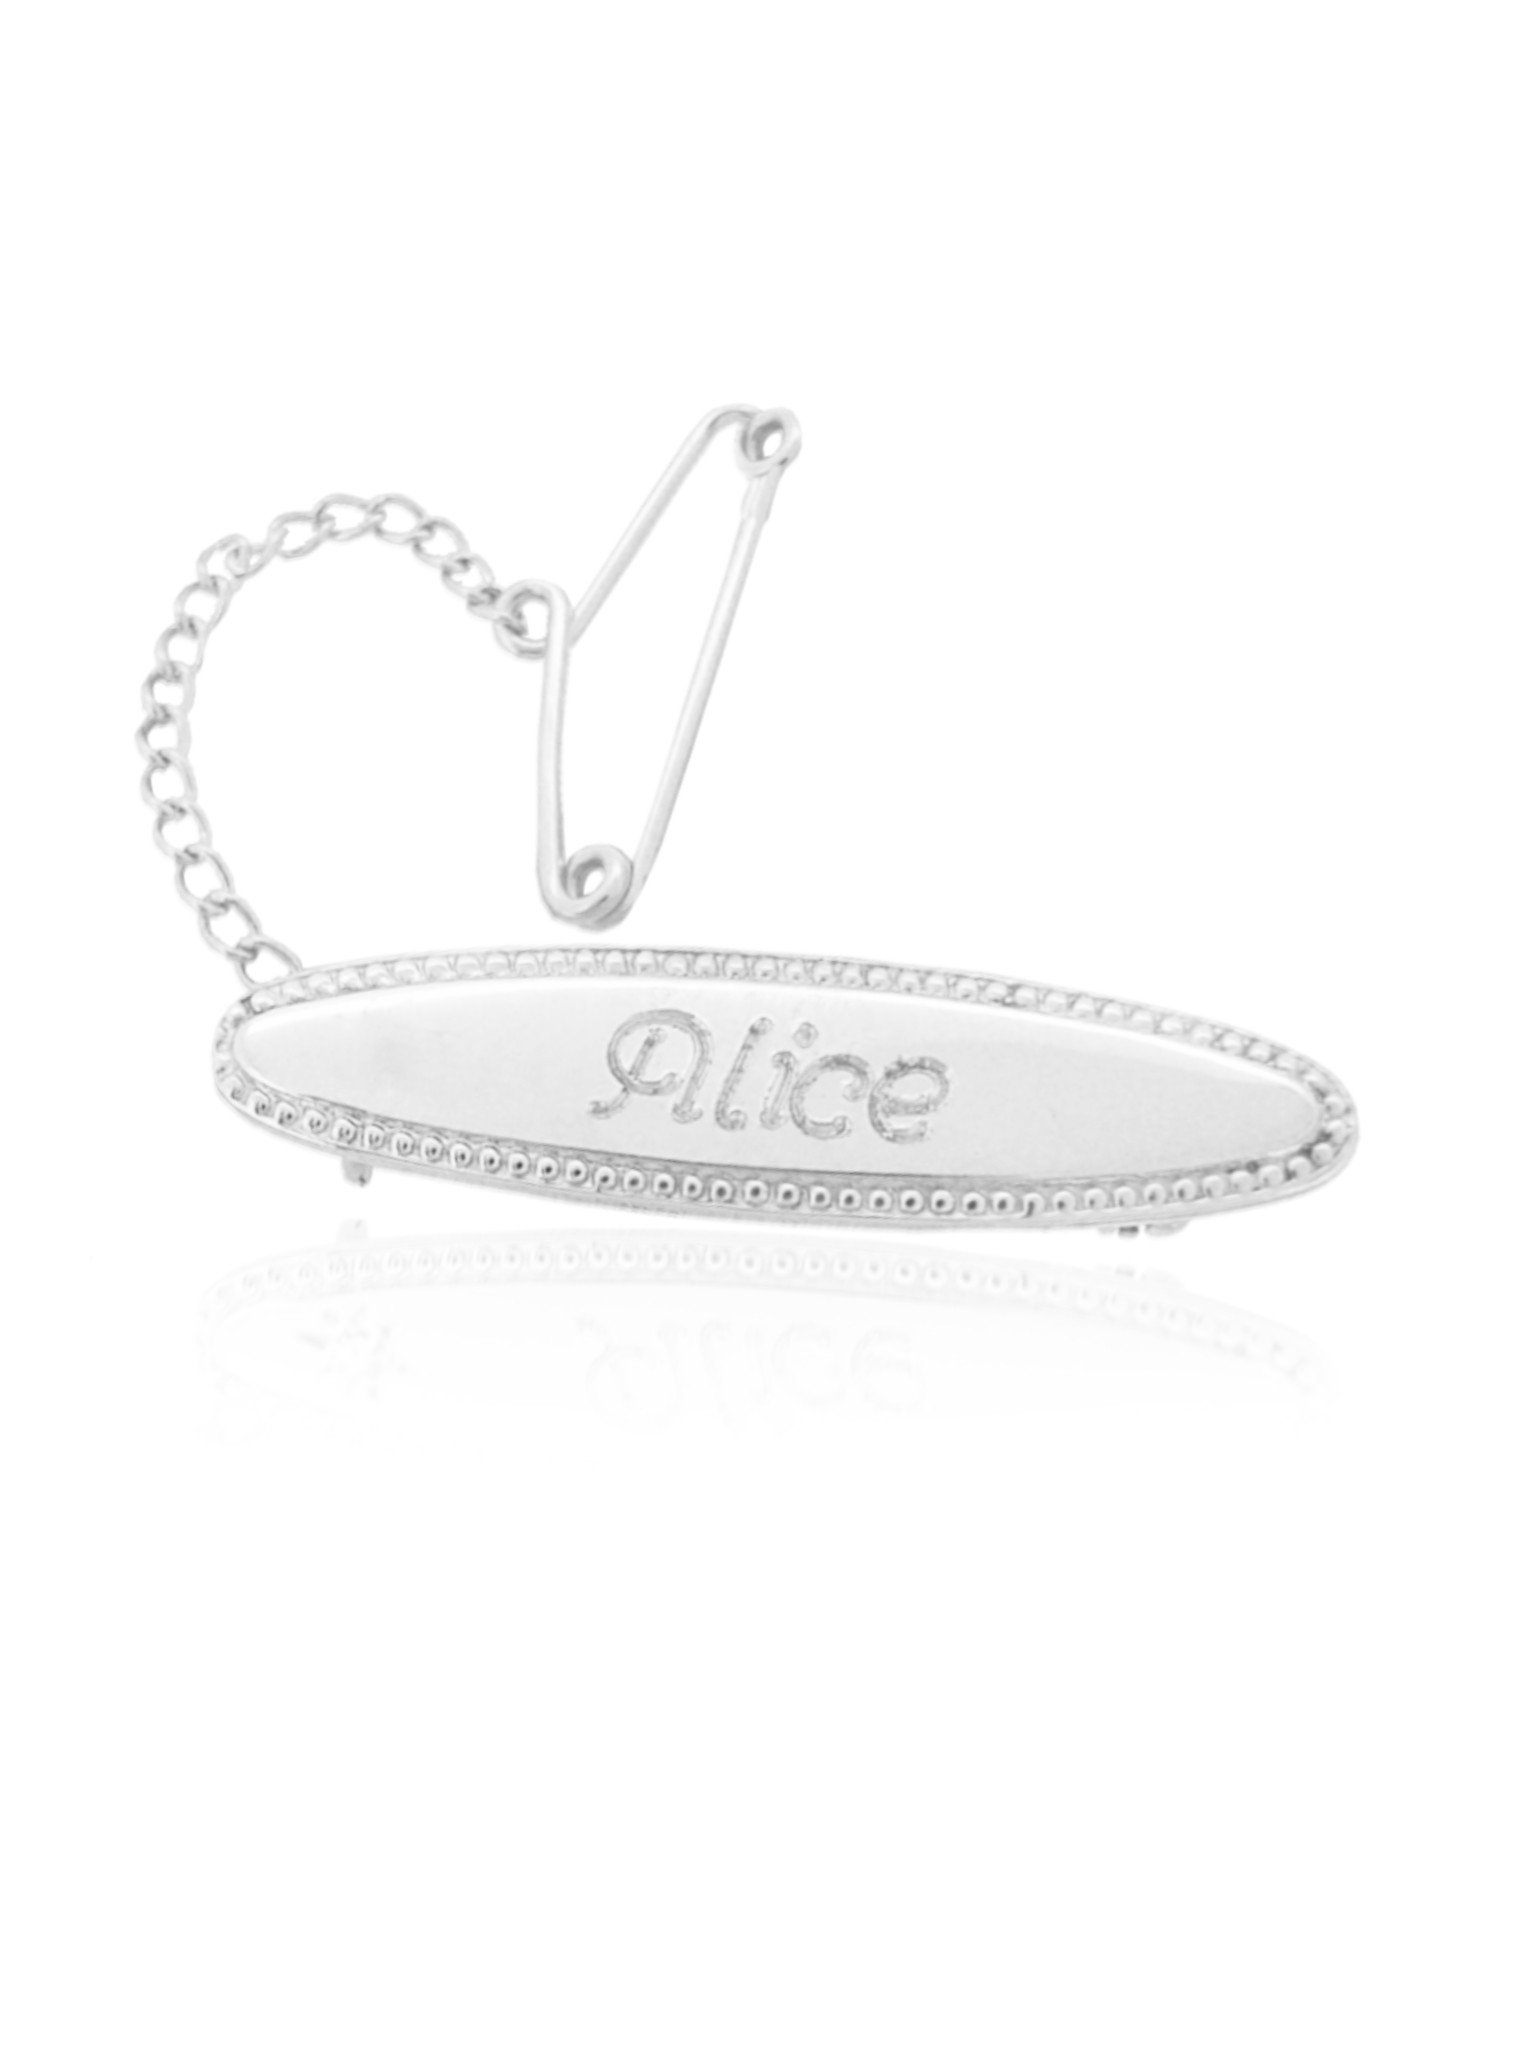 Oval Identity Name Baby Brooch in Sterling Silver